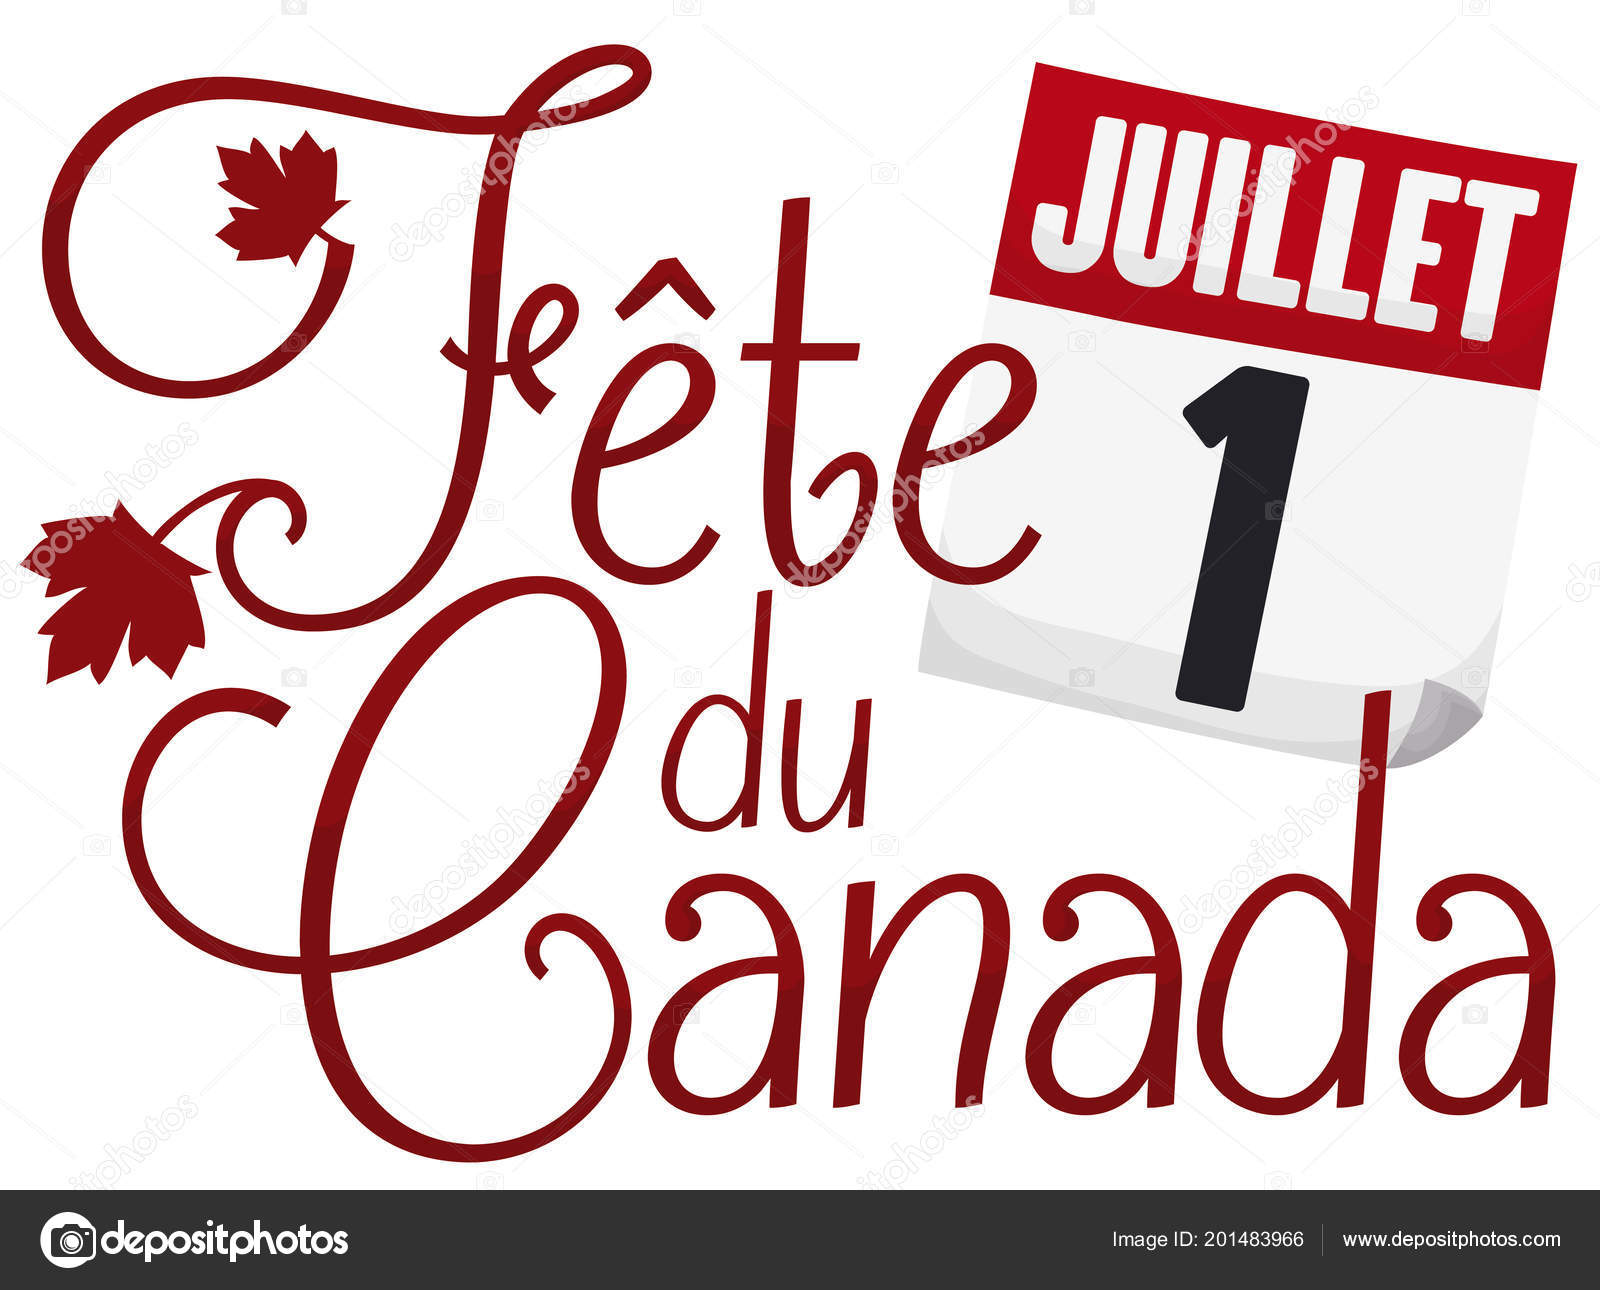 Commemorative Greetings Canada Day Written French Some Maple Leaves